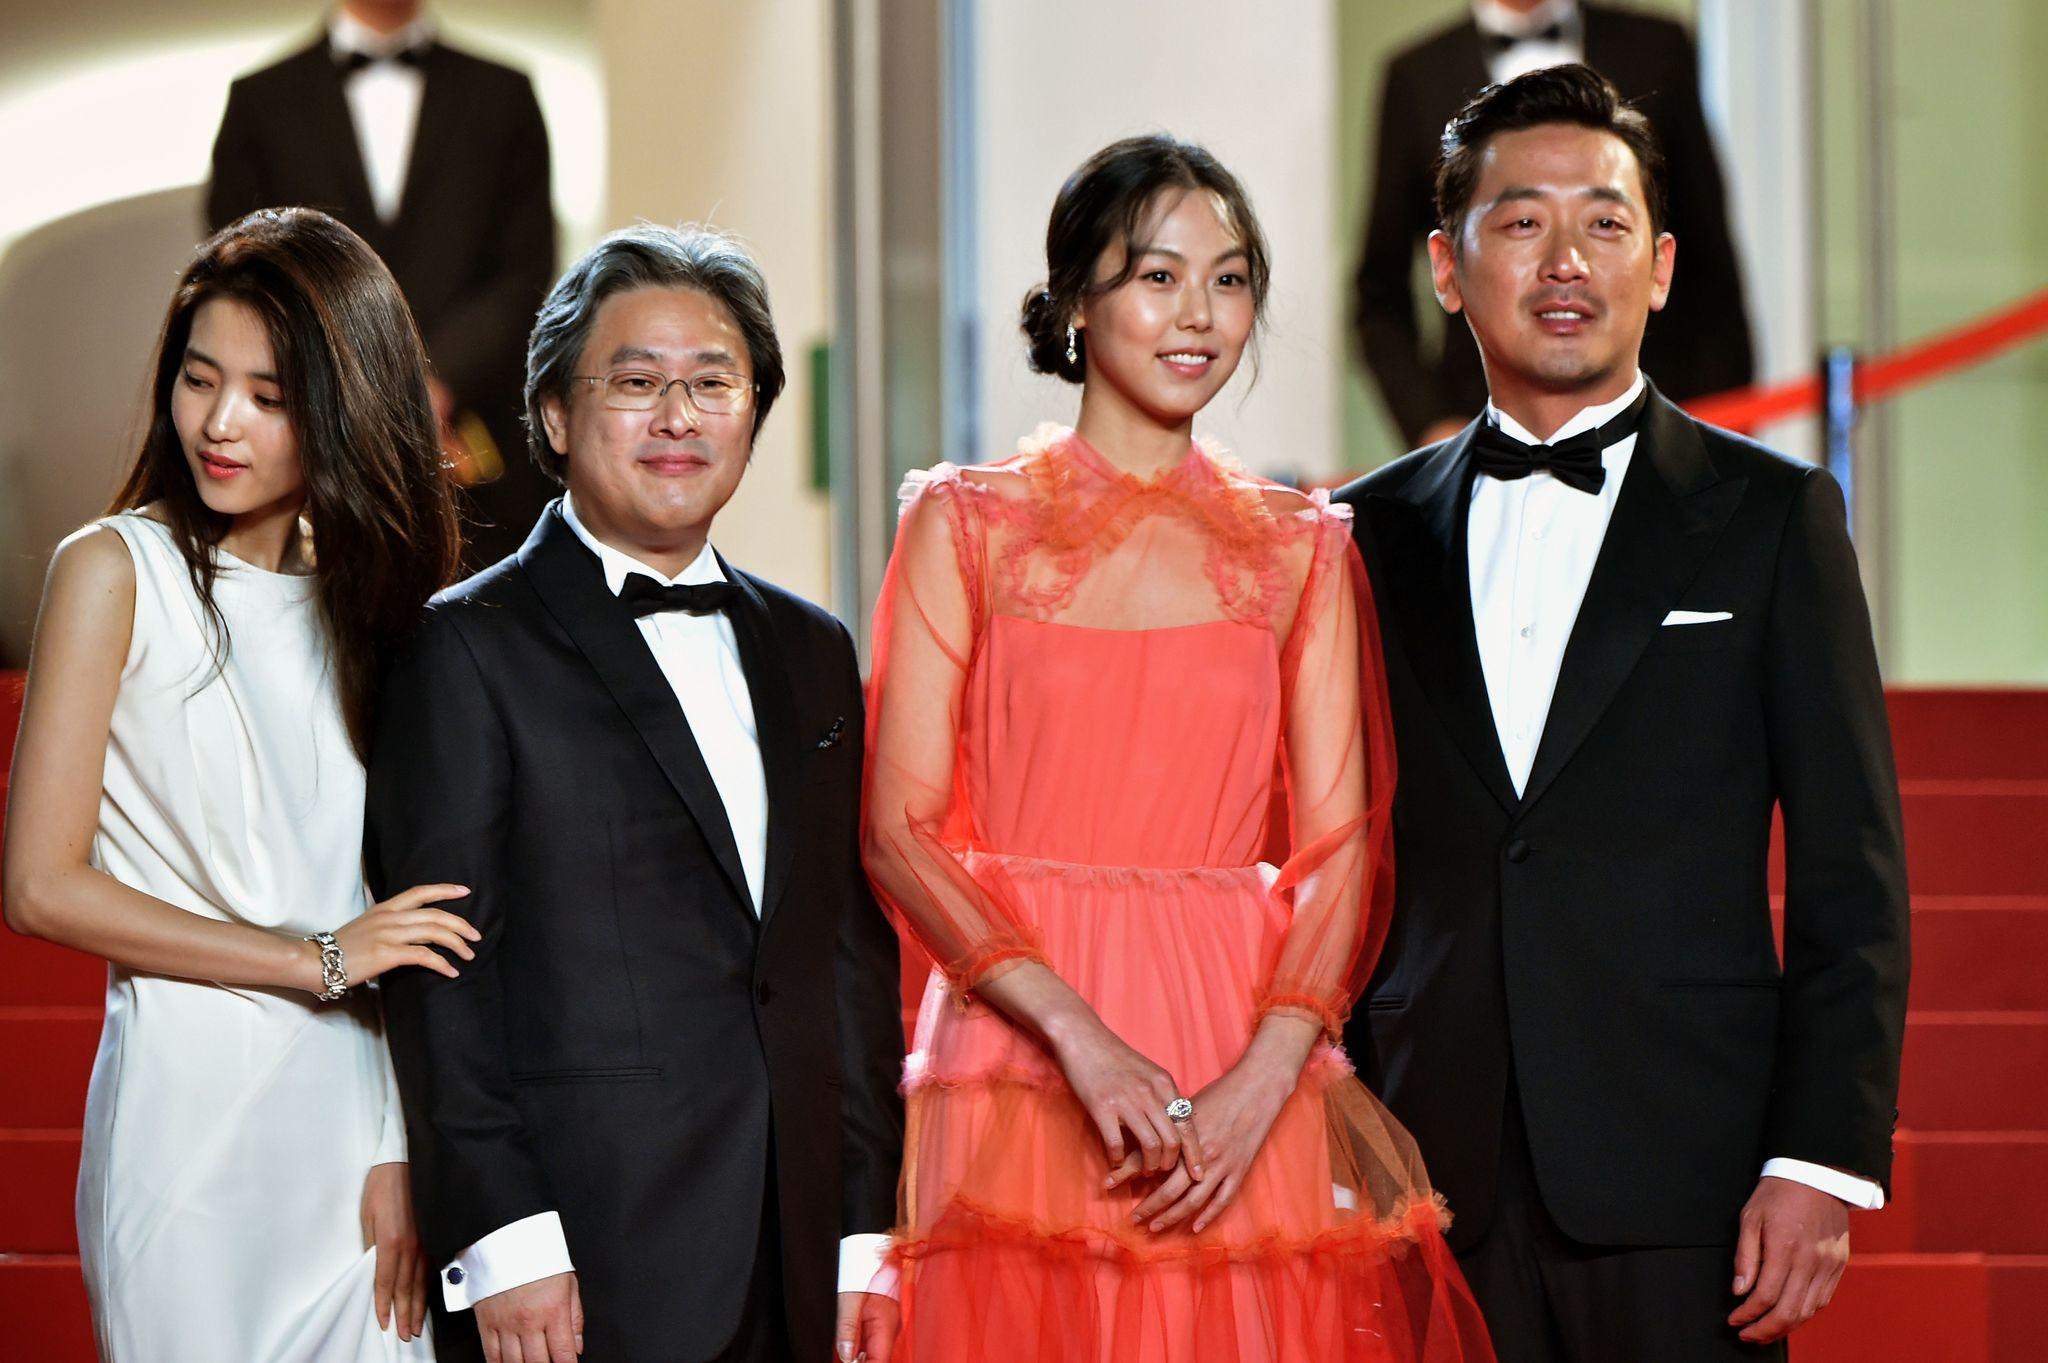 Kim Tae-ri, from left, director Park Chan-wook, Kim Min-hee and Ha Jung-woo at Cannes. (Albert Pizzoli / AFP/Getty Images)